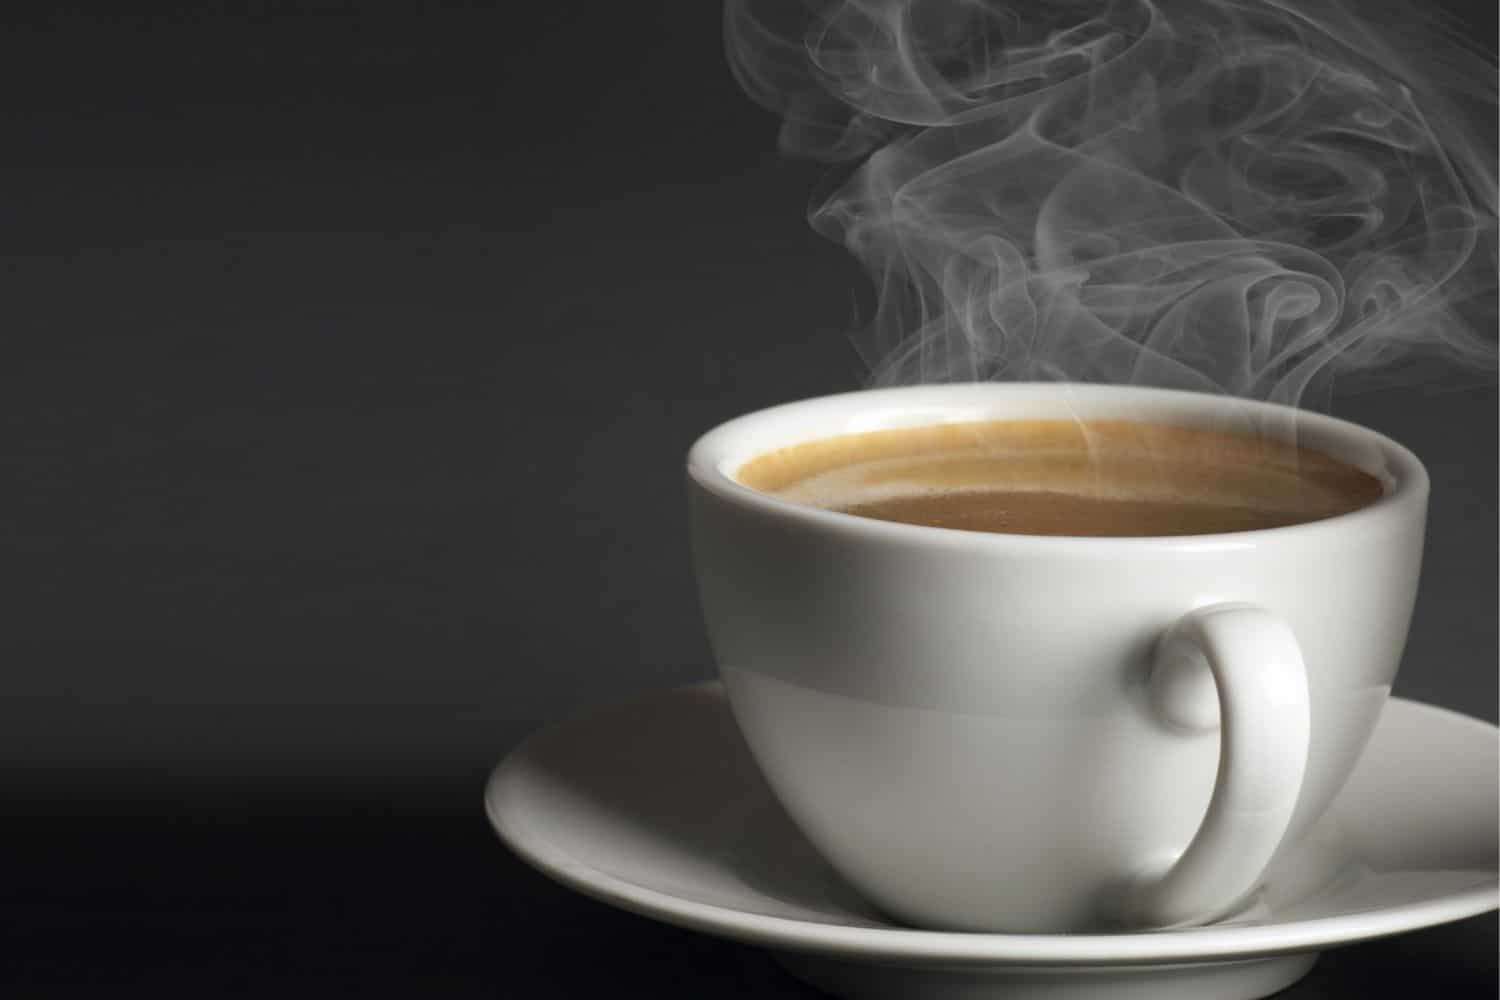 hot cup of coffee.